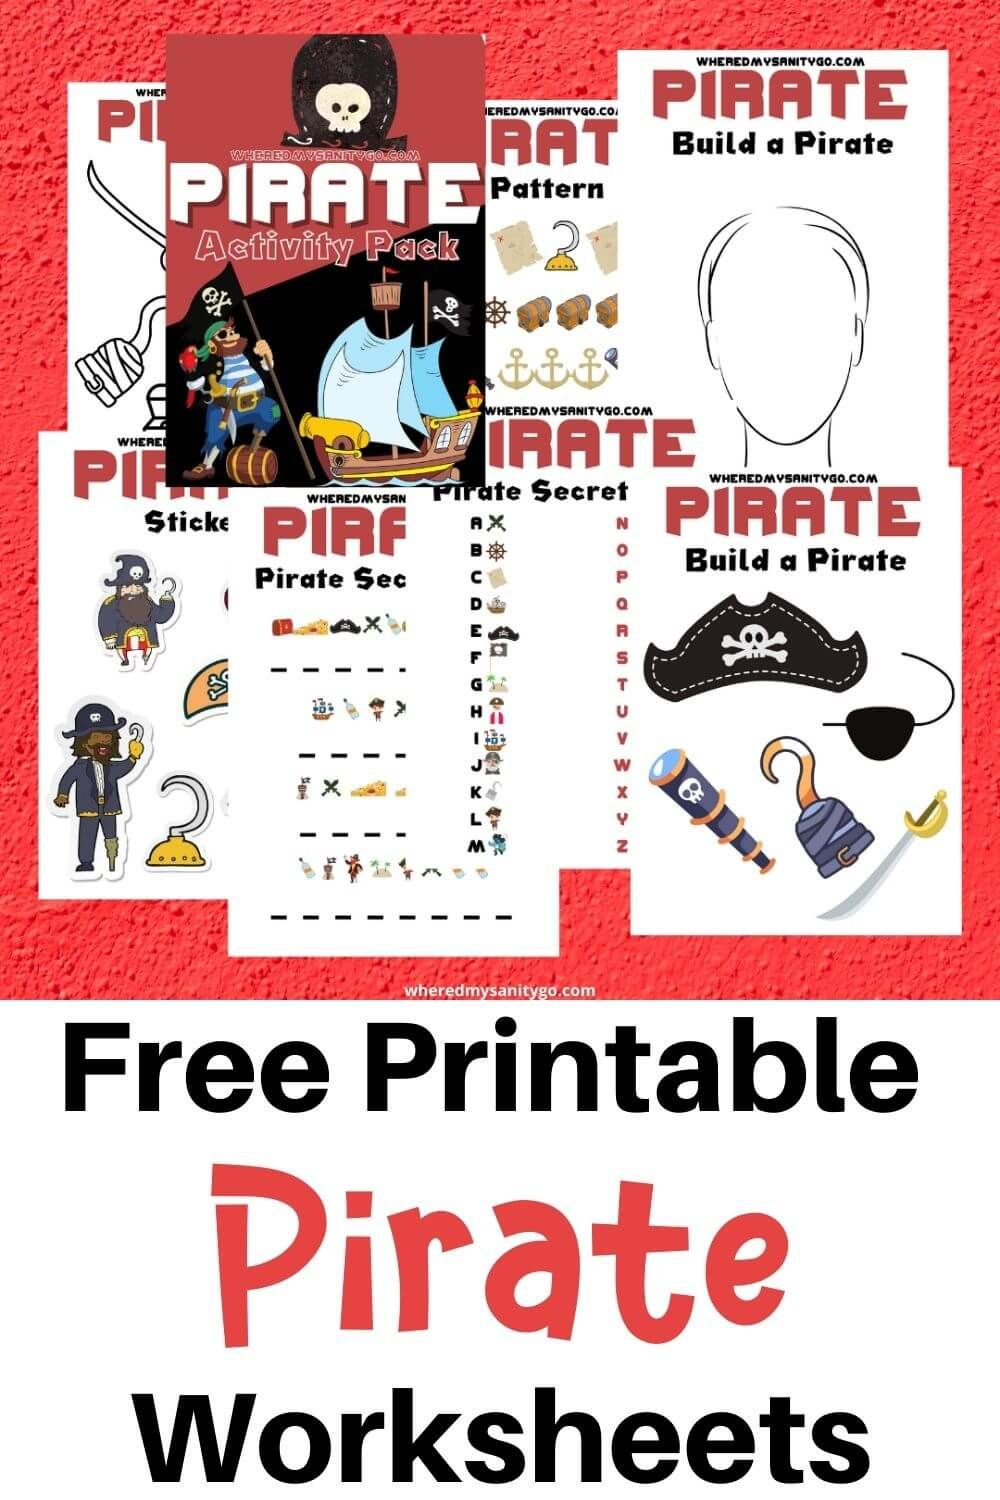 Free Printable Pirate Worksheets For Kids Build A Pirate Coloring More Pirate Activities Summer Activities For Kids Building For Kids [ 1500 x 1000 Pixel ]